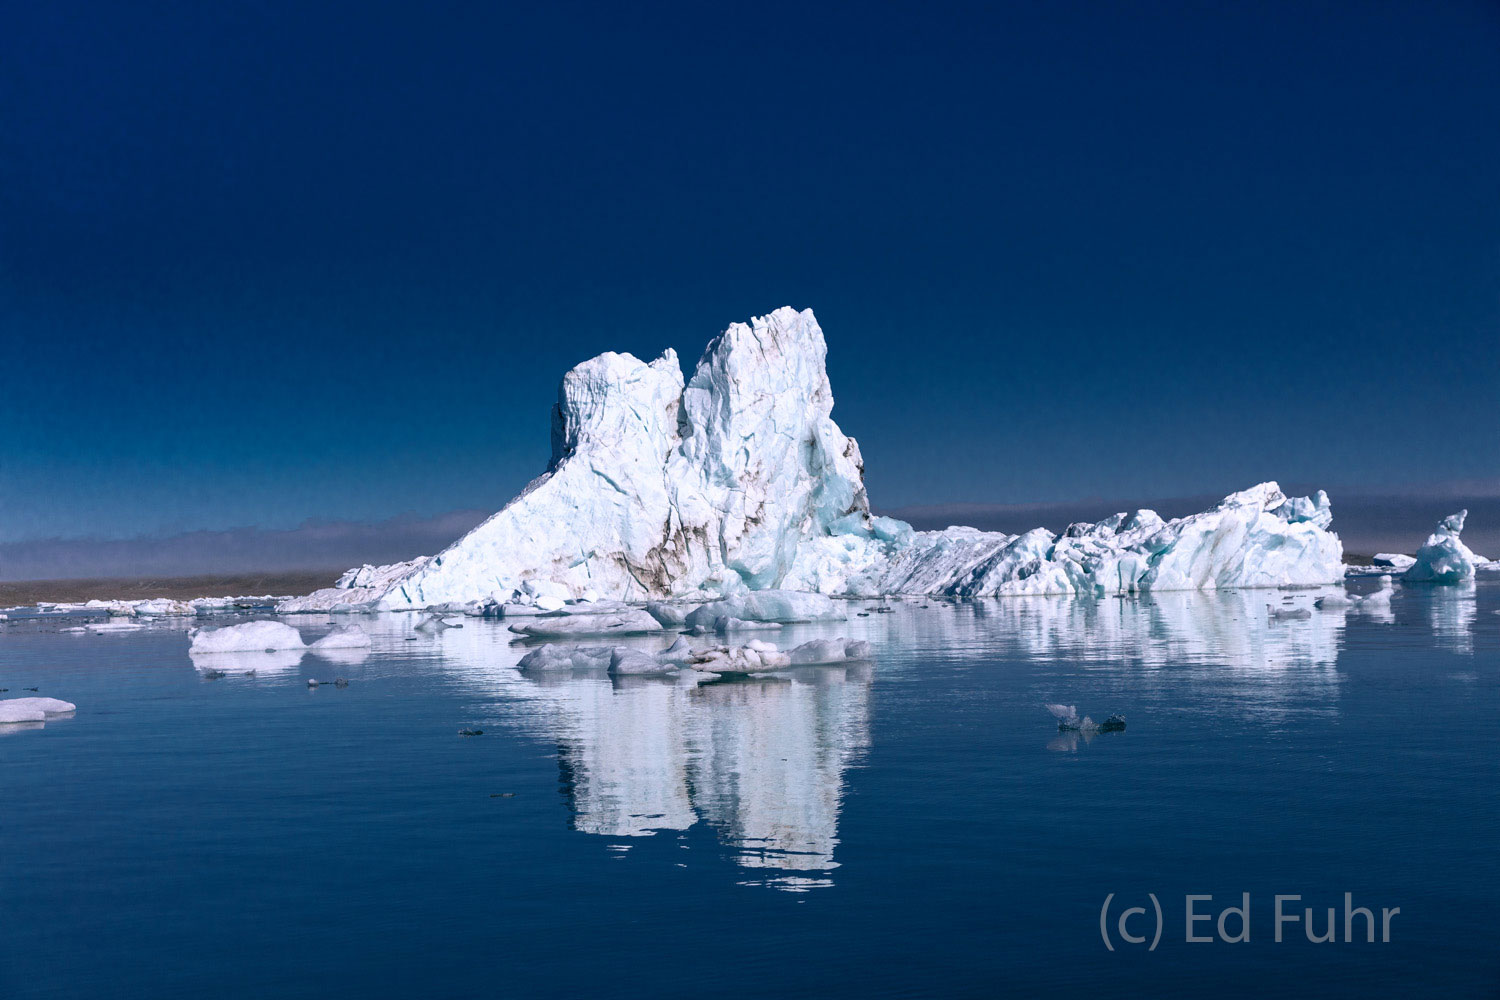 An large iceberg floats in the late afternoon lagoon below the glacier from which it was calved.